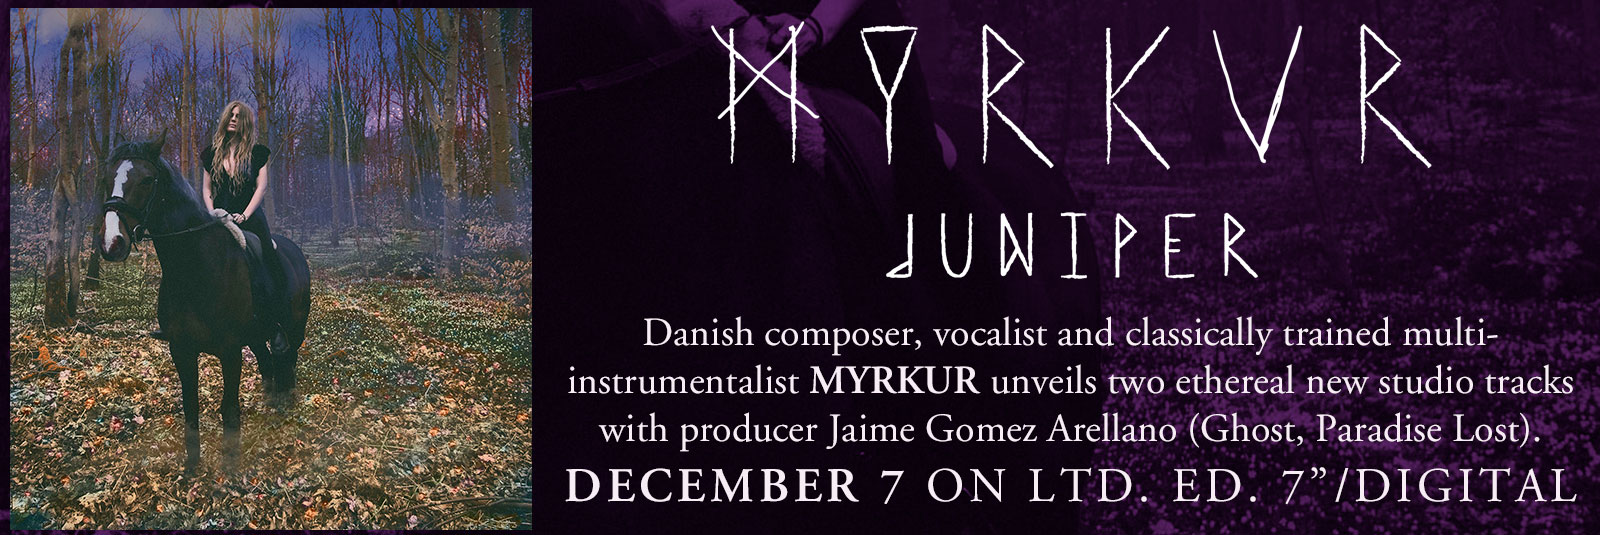 myrkur-juniper-folk-relapse-records-december-7